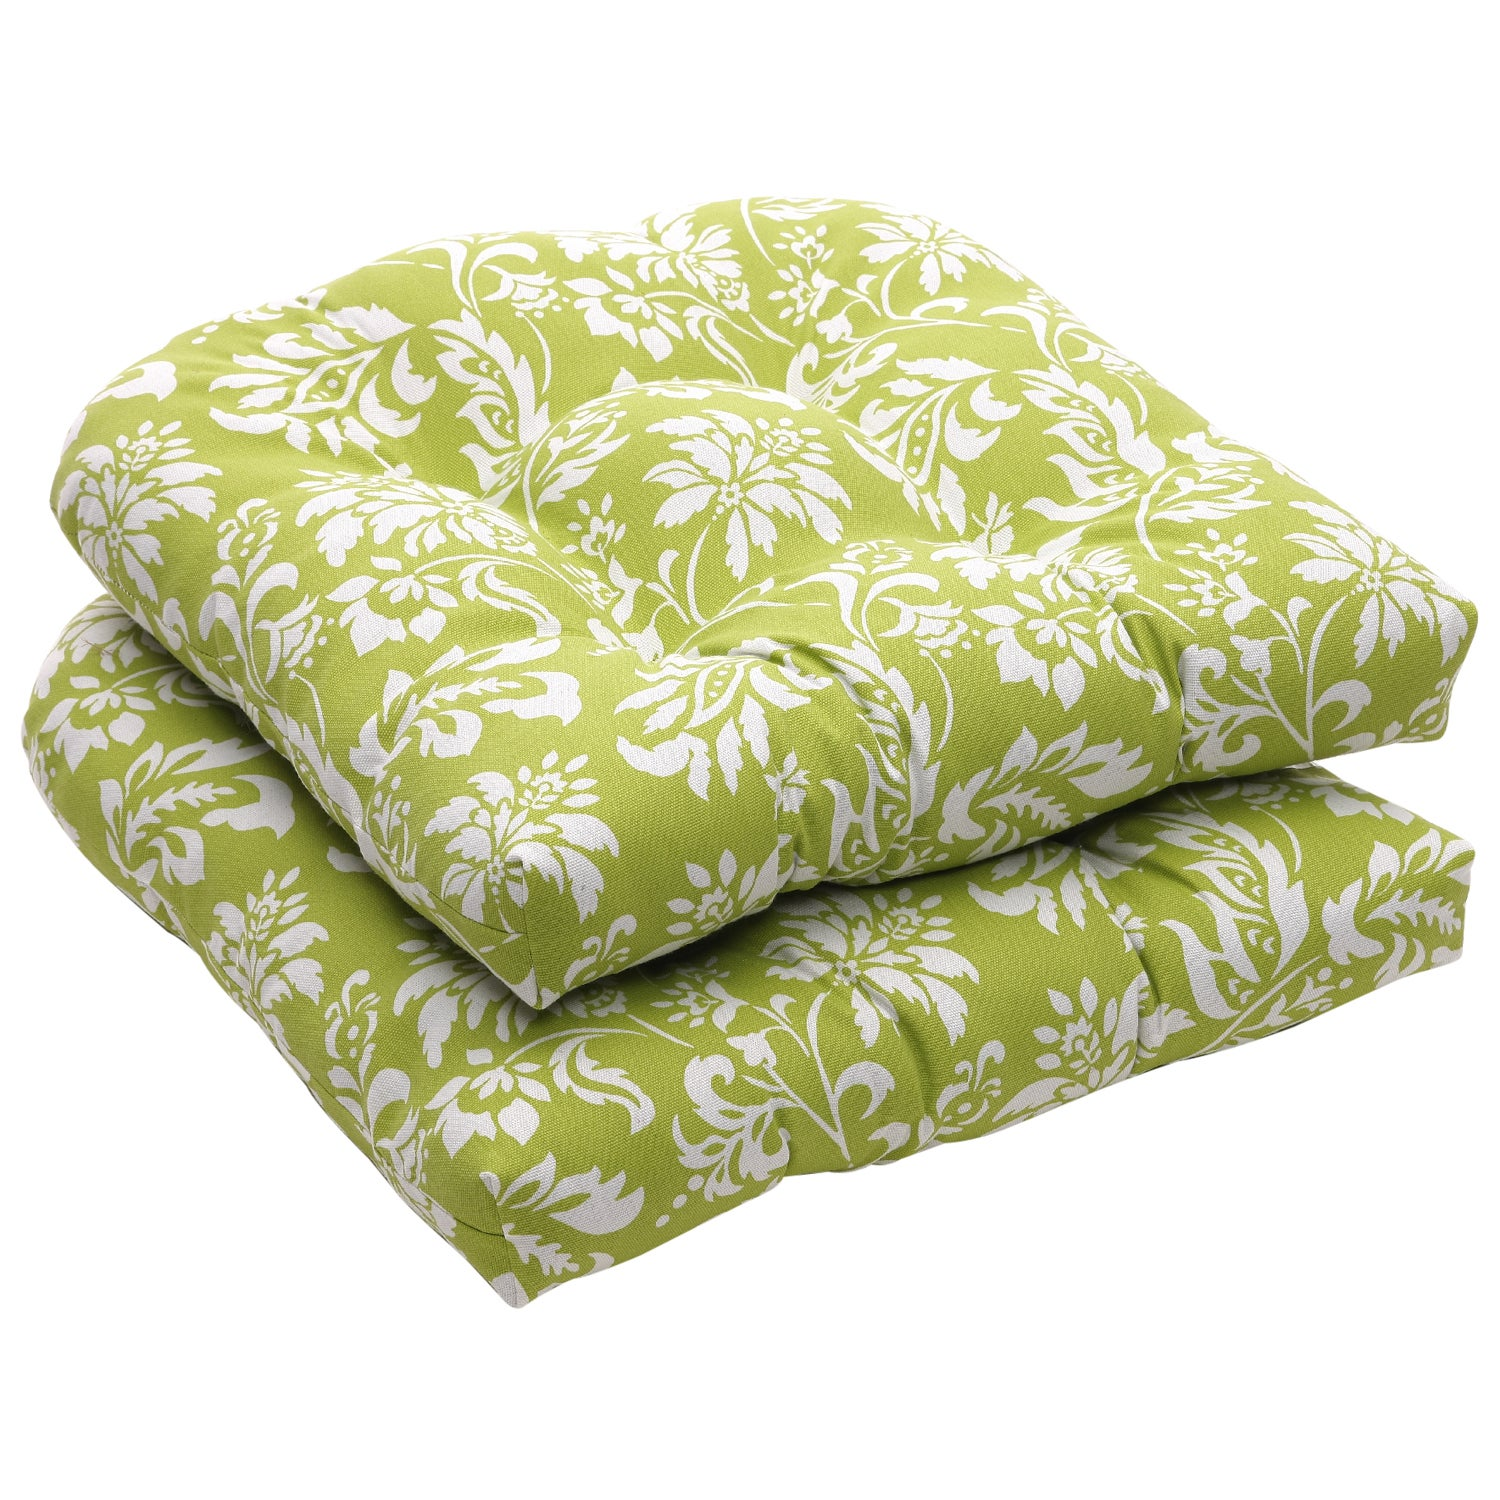 Shop Outdoor Green And White Floral Wicker Seat Cushions